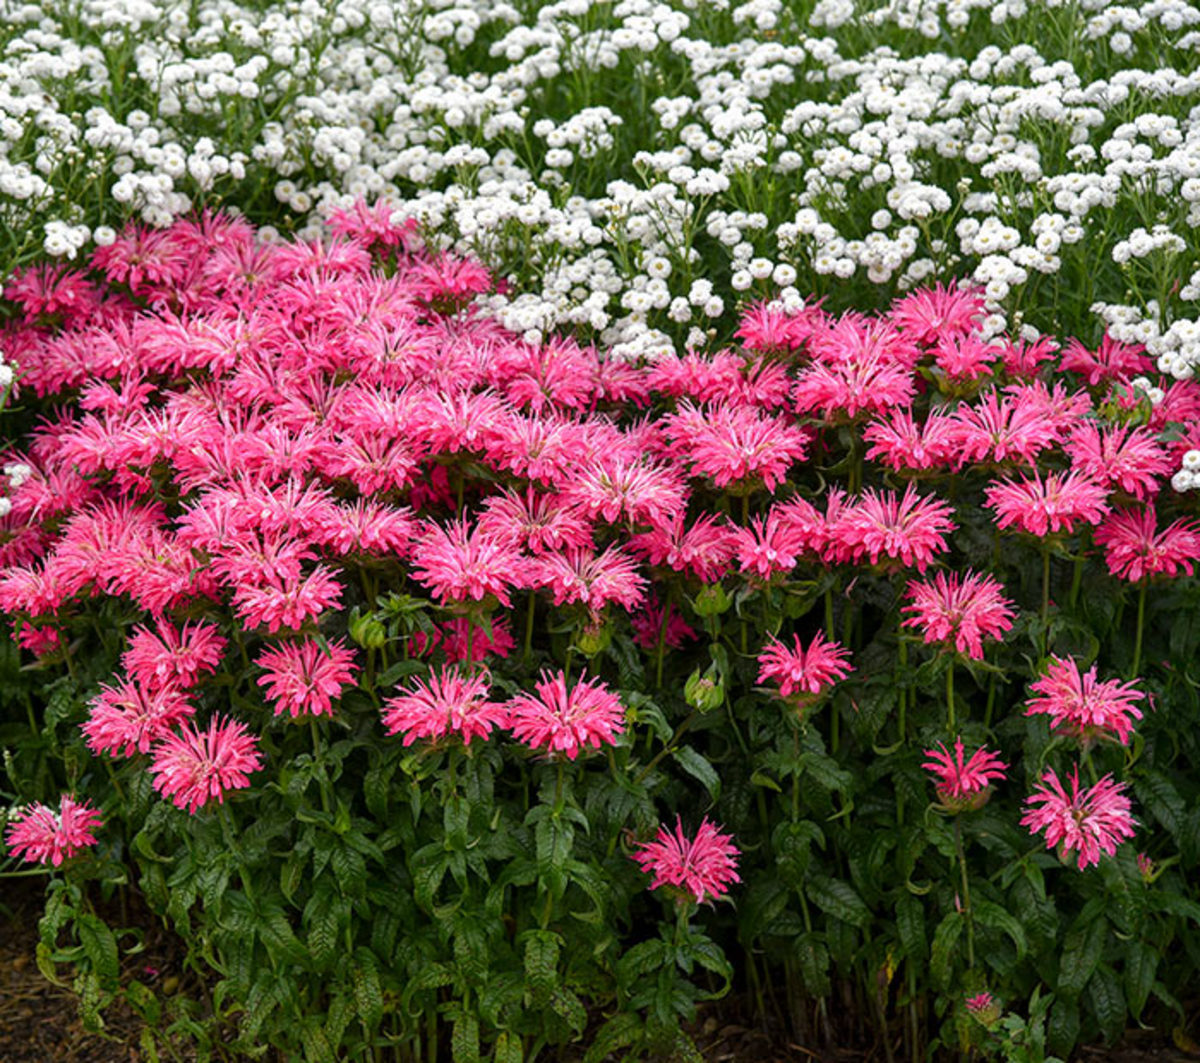 Breeding has pushed the color options of monarda past red and purple into all shades of pink, as evidenced by this cultivar, 'Electric Neon Pink'.